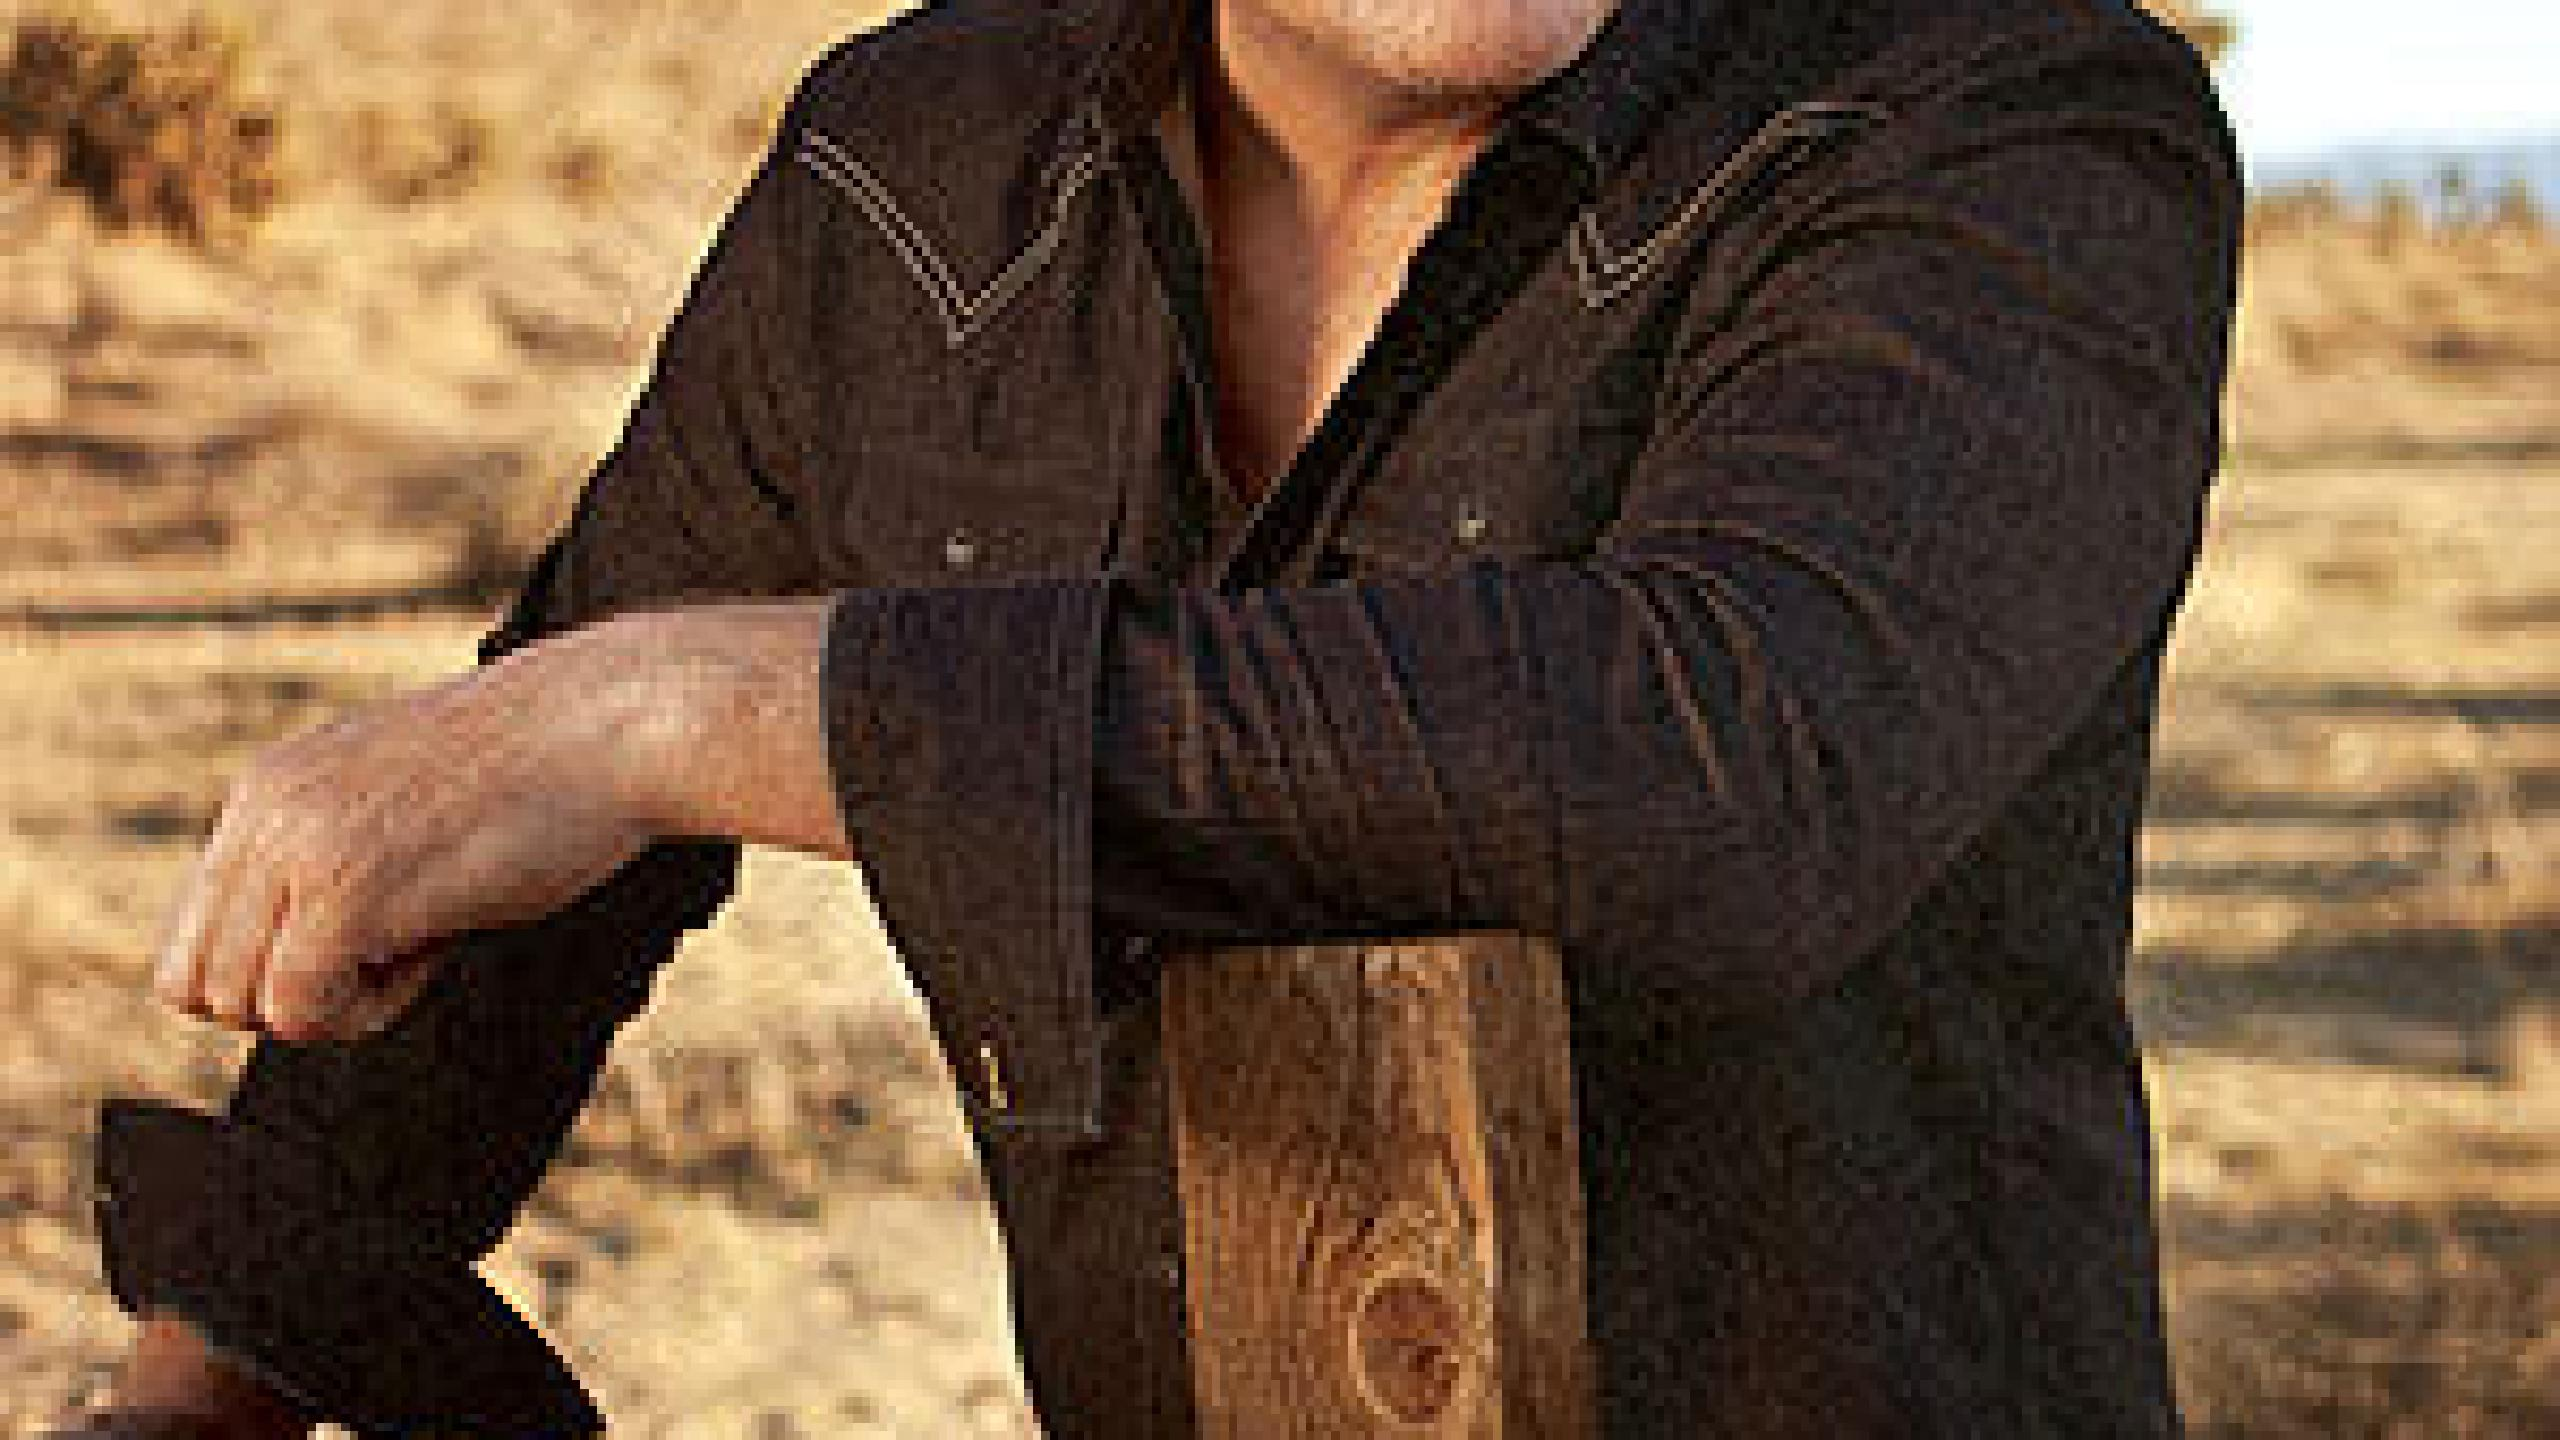 Collin Raye Tour 2020 Collin Raye tour dates 2019 2020. Collin Raye tickets and concerts